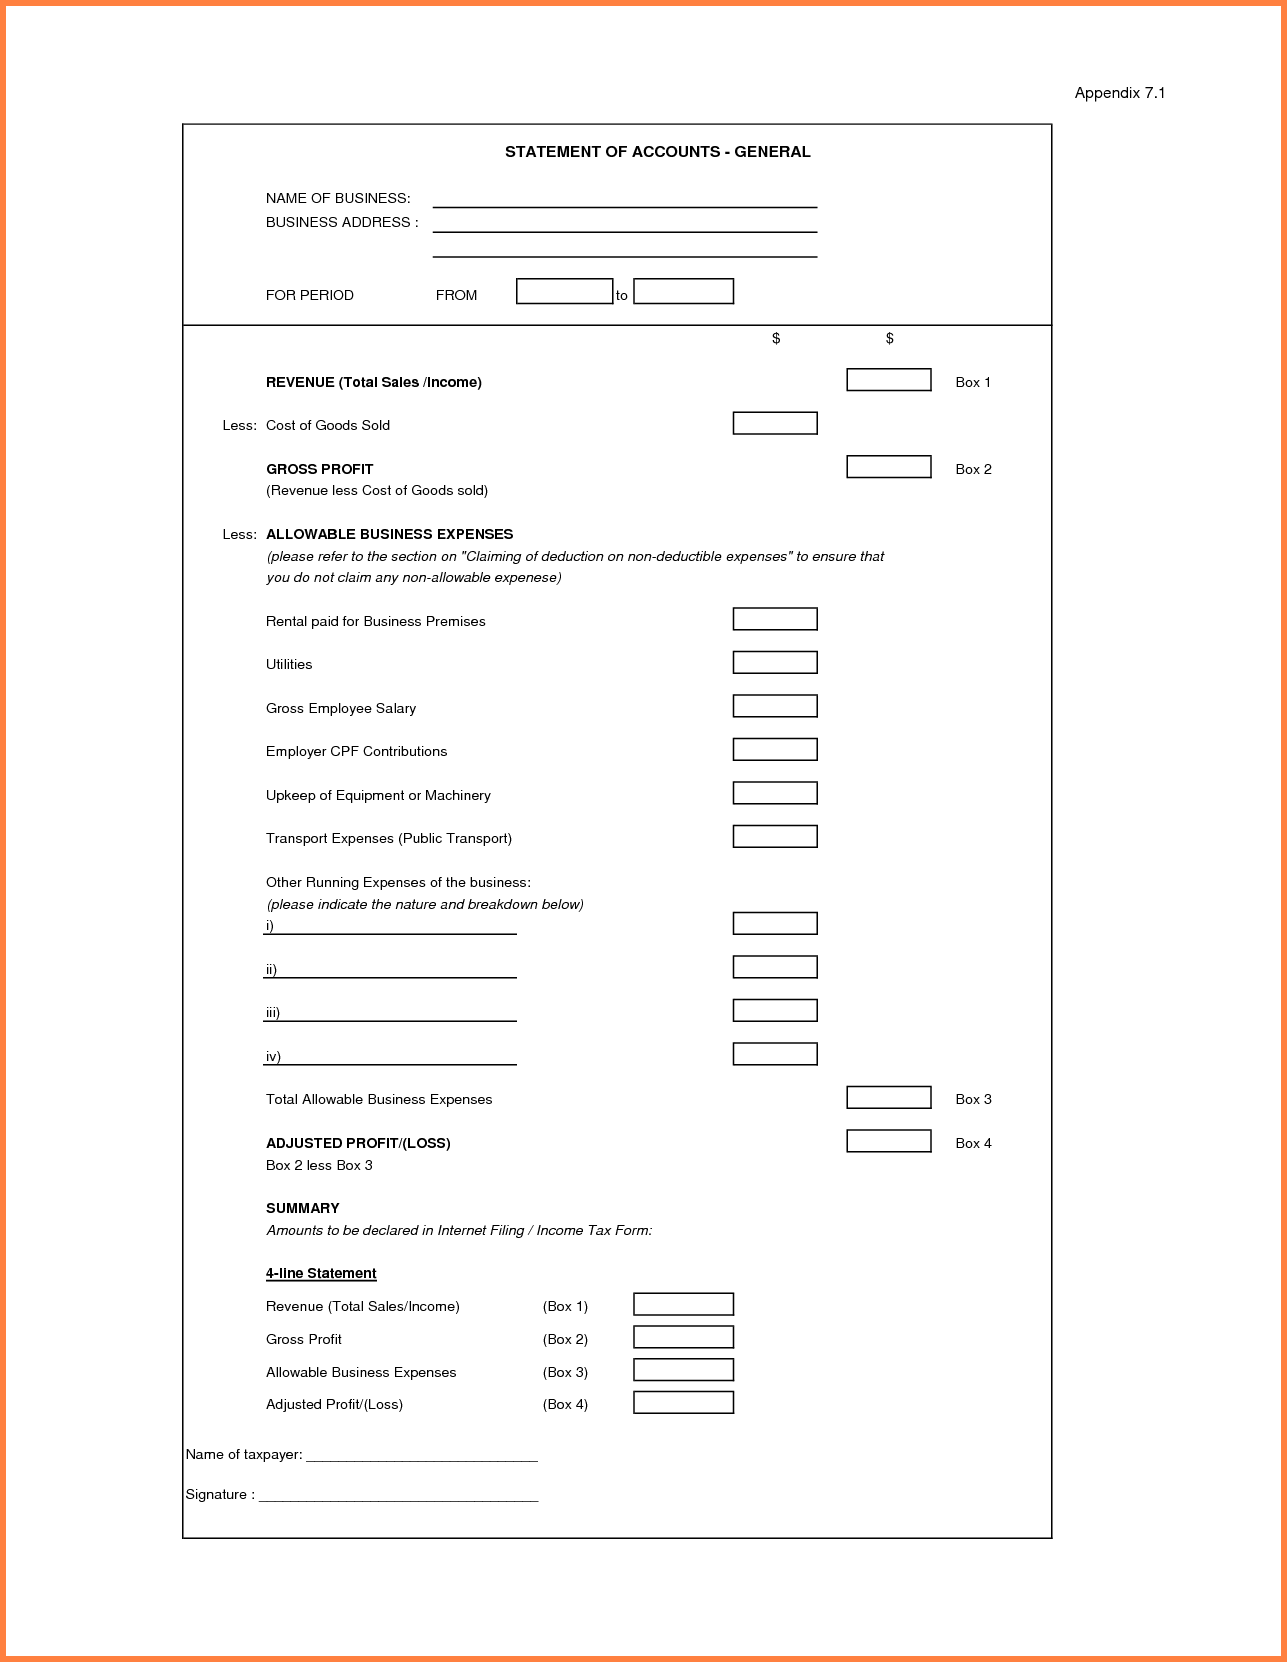 Profit and Loss Statement Template for Self Employed and Profit and Loss Statement for Self Employedofit and Loss